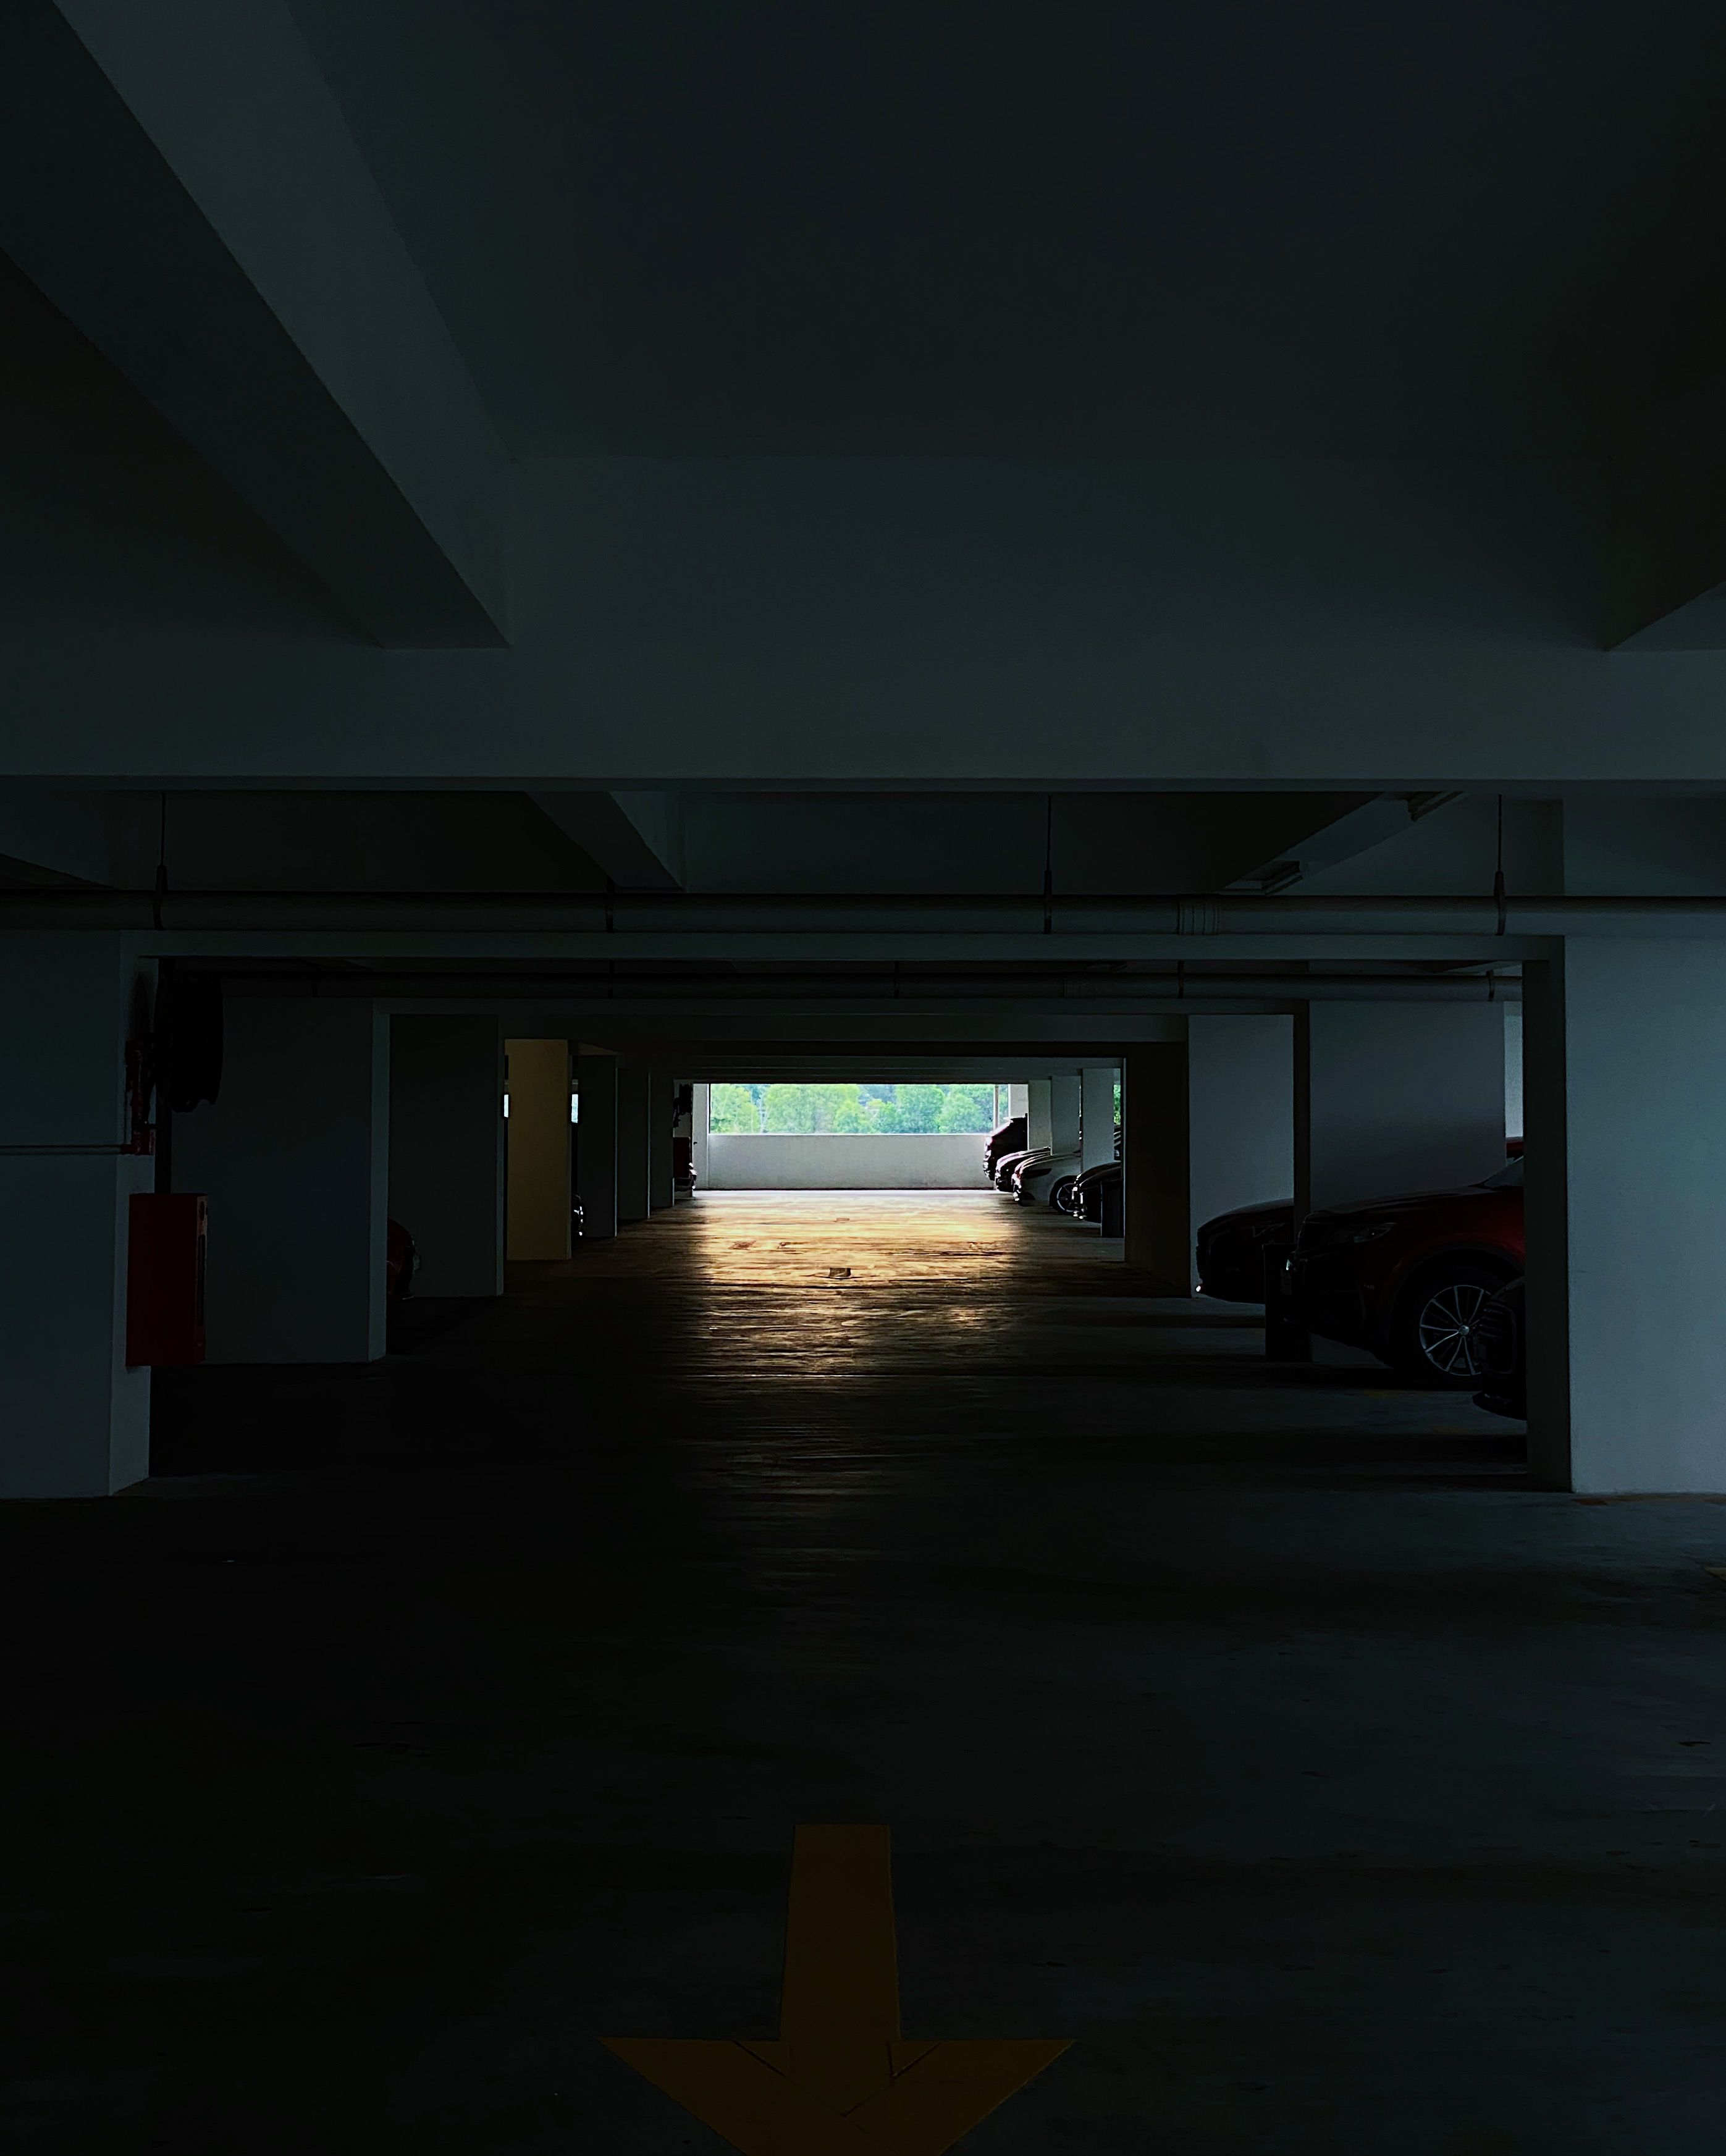 (iPhone 11 Pro) Photo by me, at one of my apartment's carpark floors.